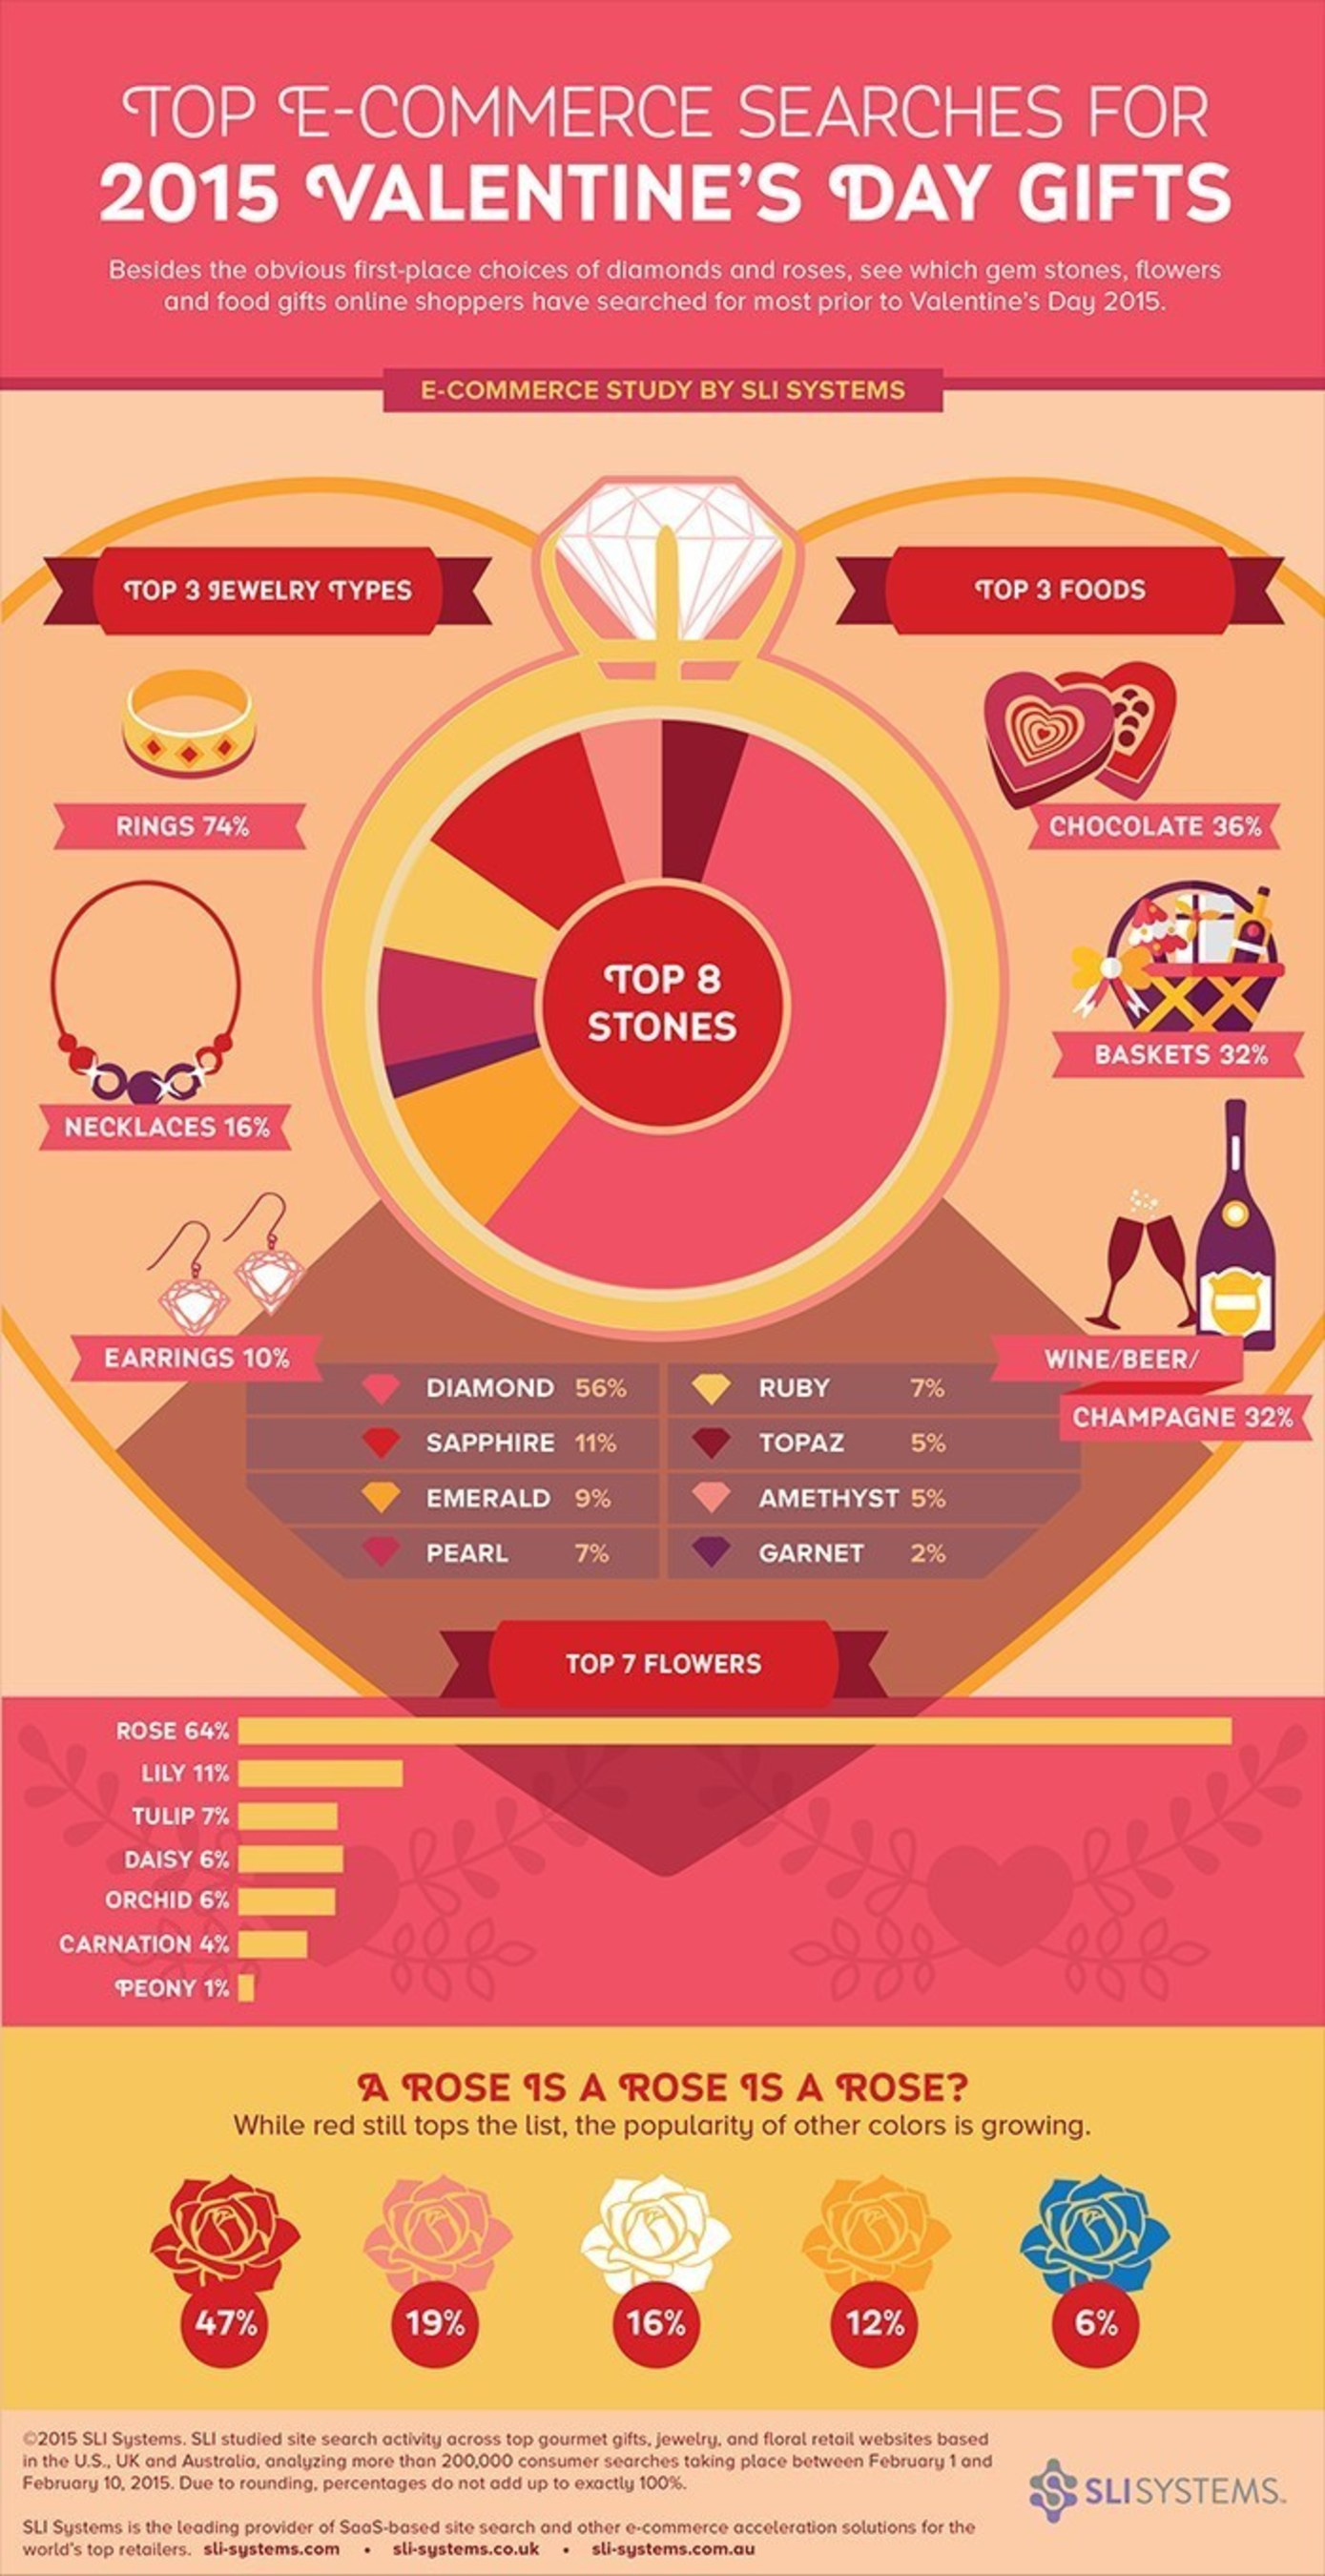 Top E-Commerce Searches for 2015 Valentine's Day Gifts